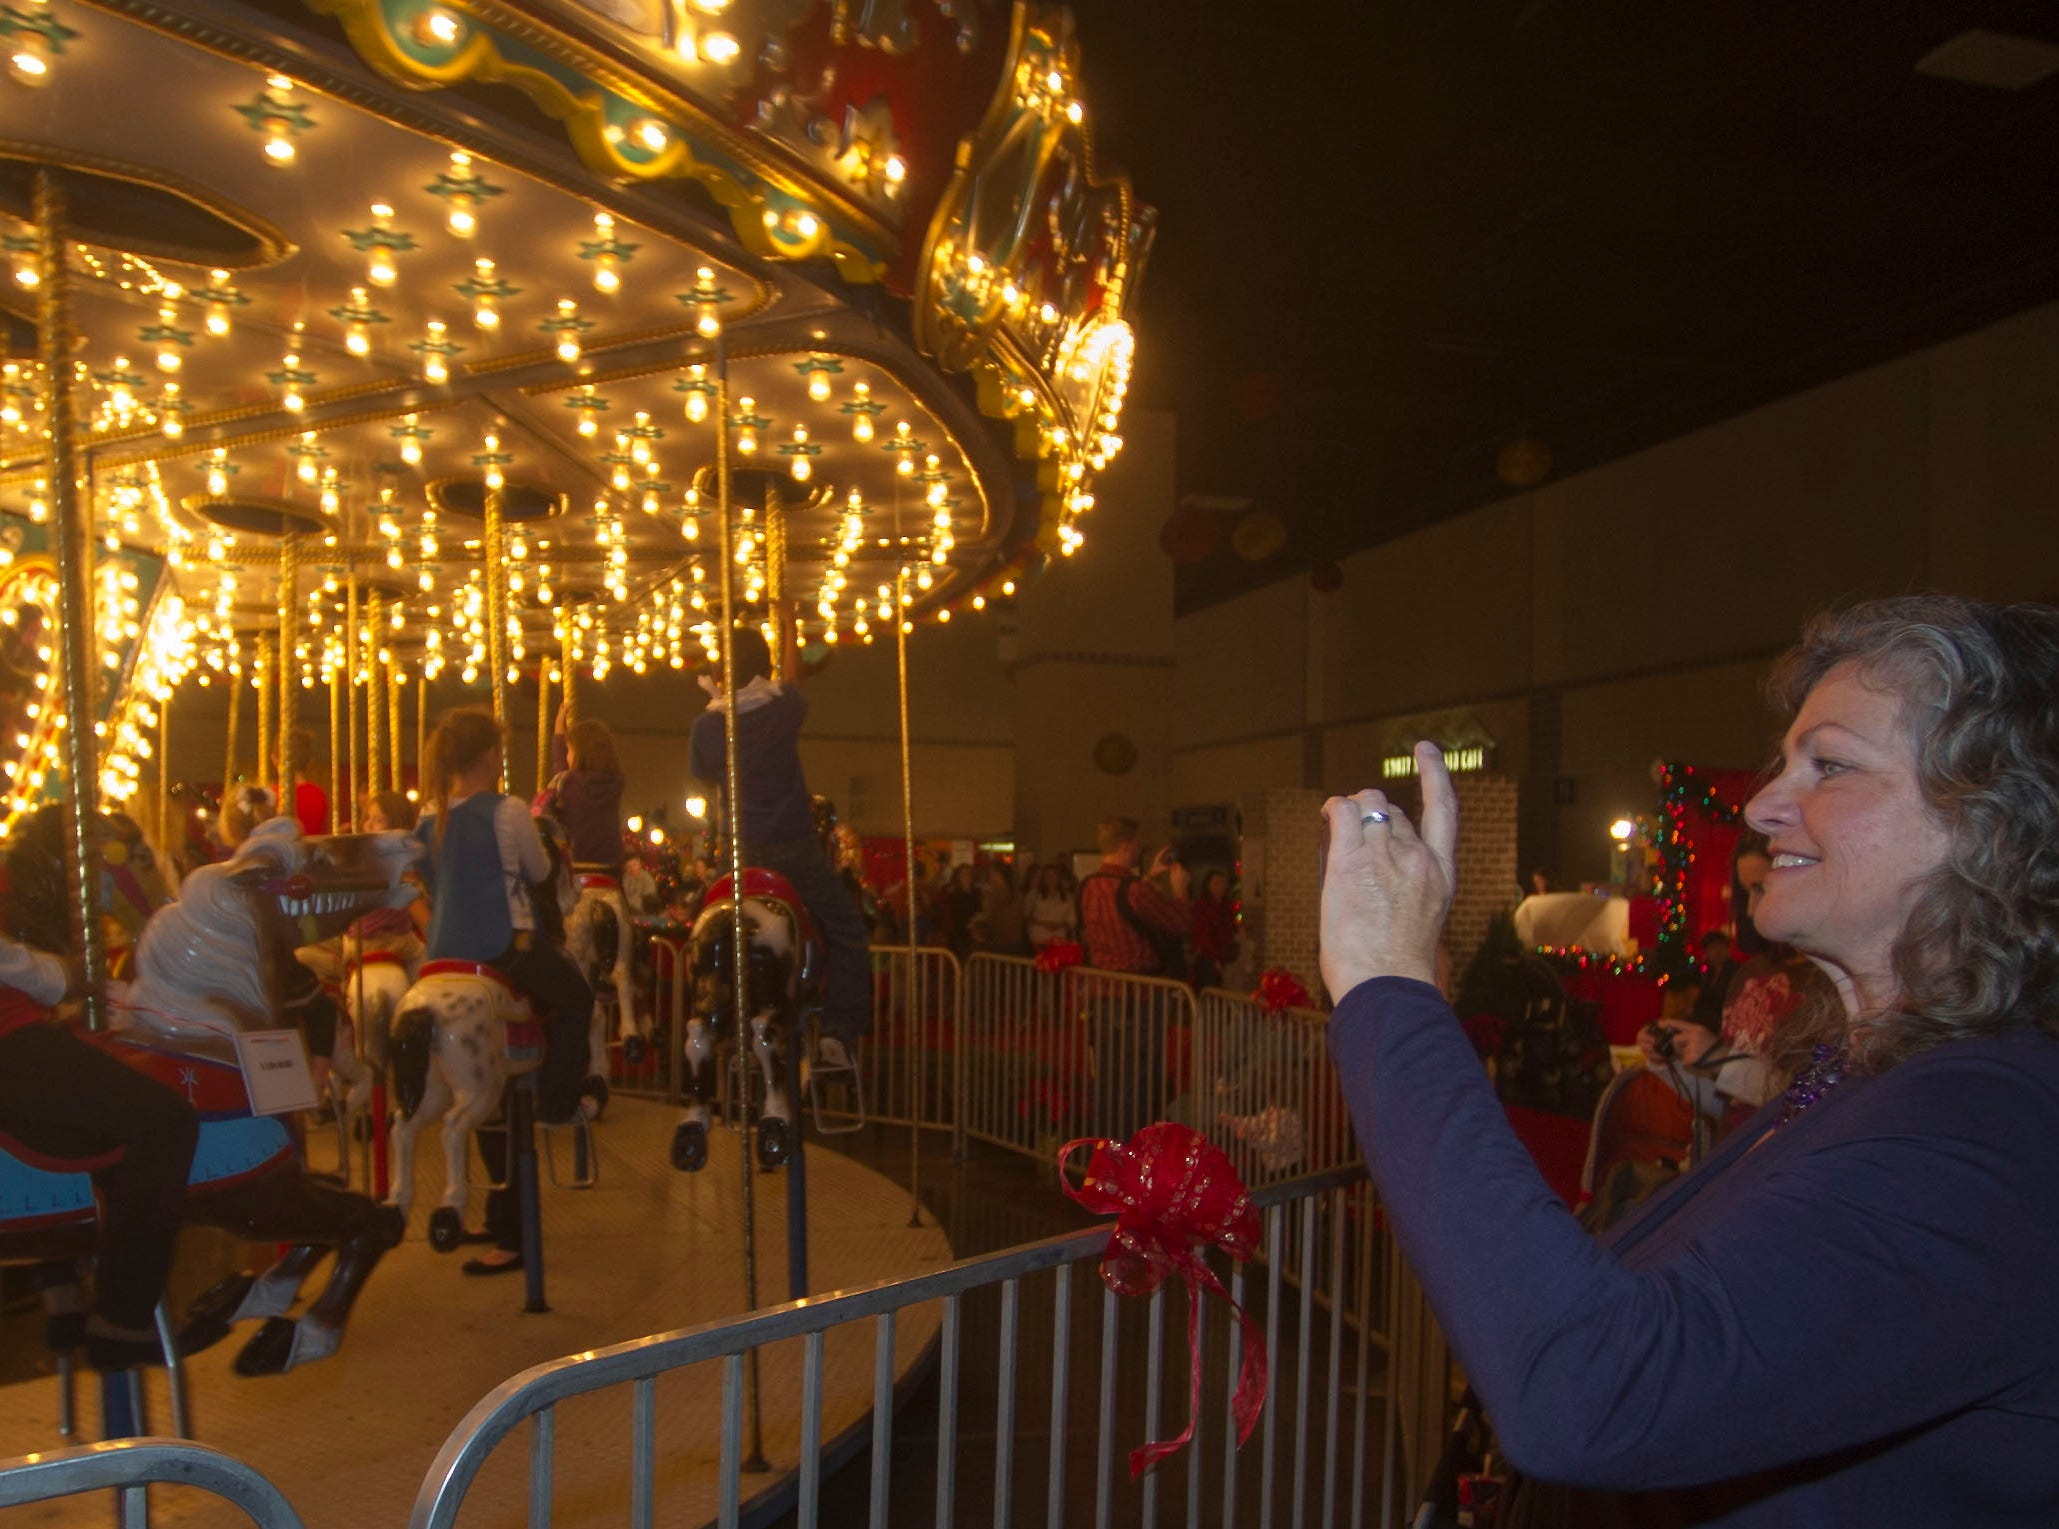 Ailene Radcliffe, right photographs her grand child riding the carousel at the Fantasy of Trees. The 28th Fantasy of Trees once again transforms the downtown Knoxville Convention Center into a winter wonderland of decorated trees, gingerbread houses, holiday shops and children's activities, helping move Thanksgiving week into the Christmas season. ( J. MILES CARY/NEWS SENTINEL )